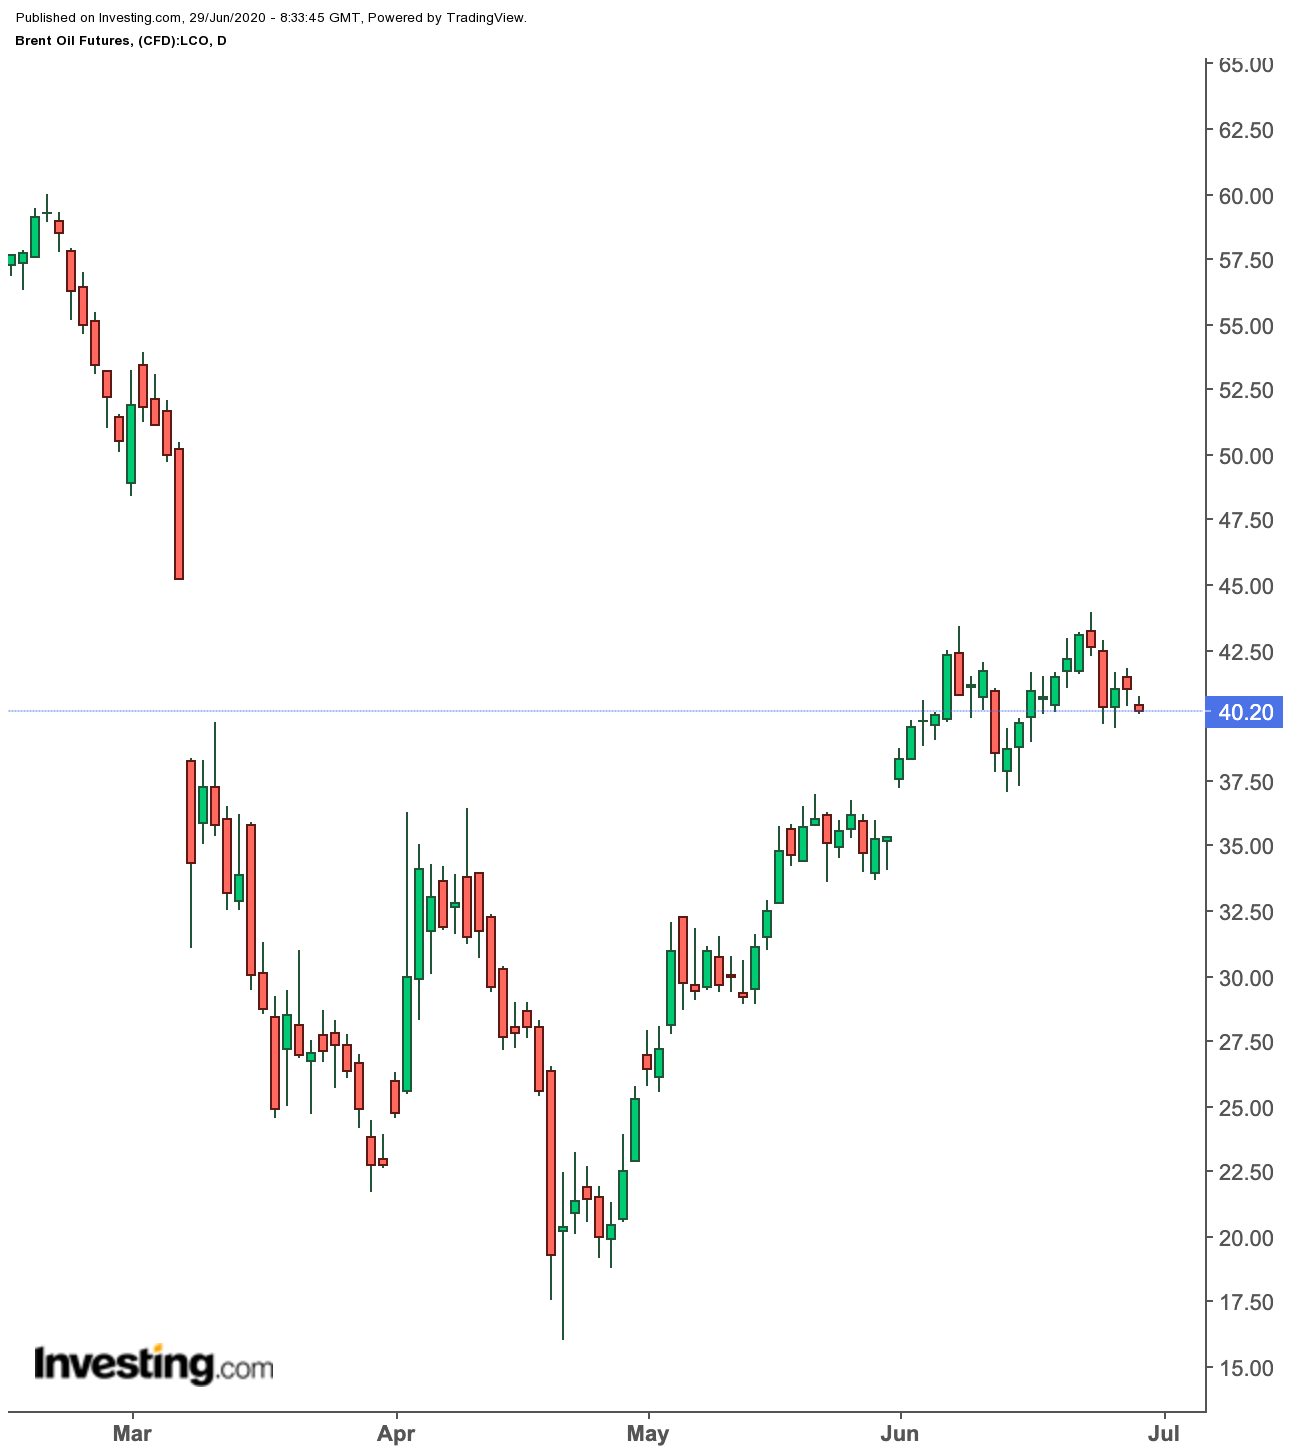 Daily Brent crude futures